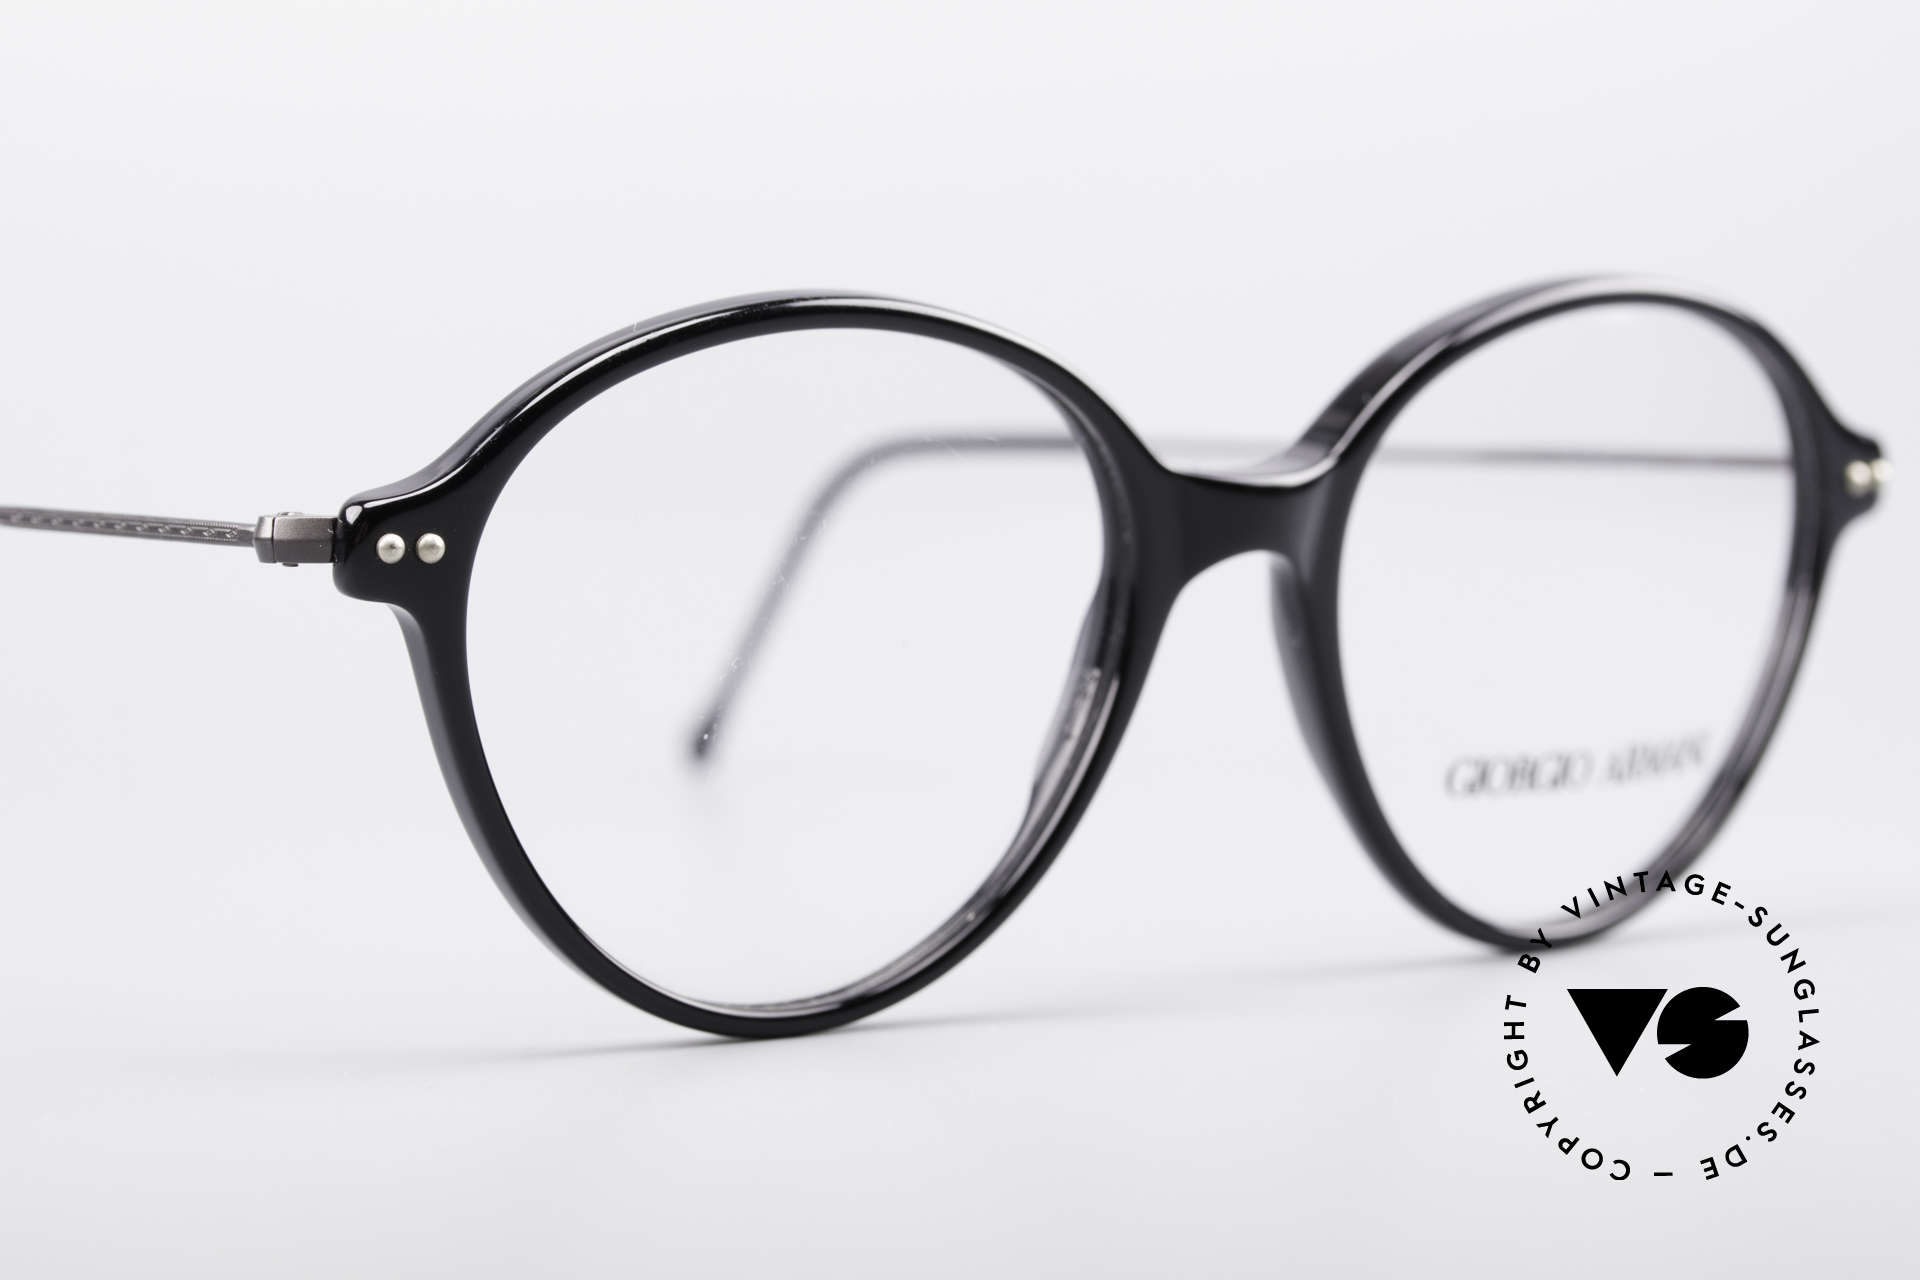 Giorgio Armani 374 90's Unisex Vintage Glasses, unworn Giorgio Armani original from the mid. 90's, Made for Men and Women